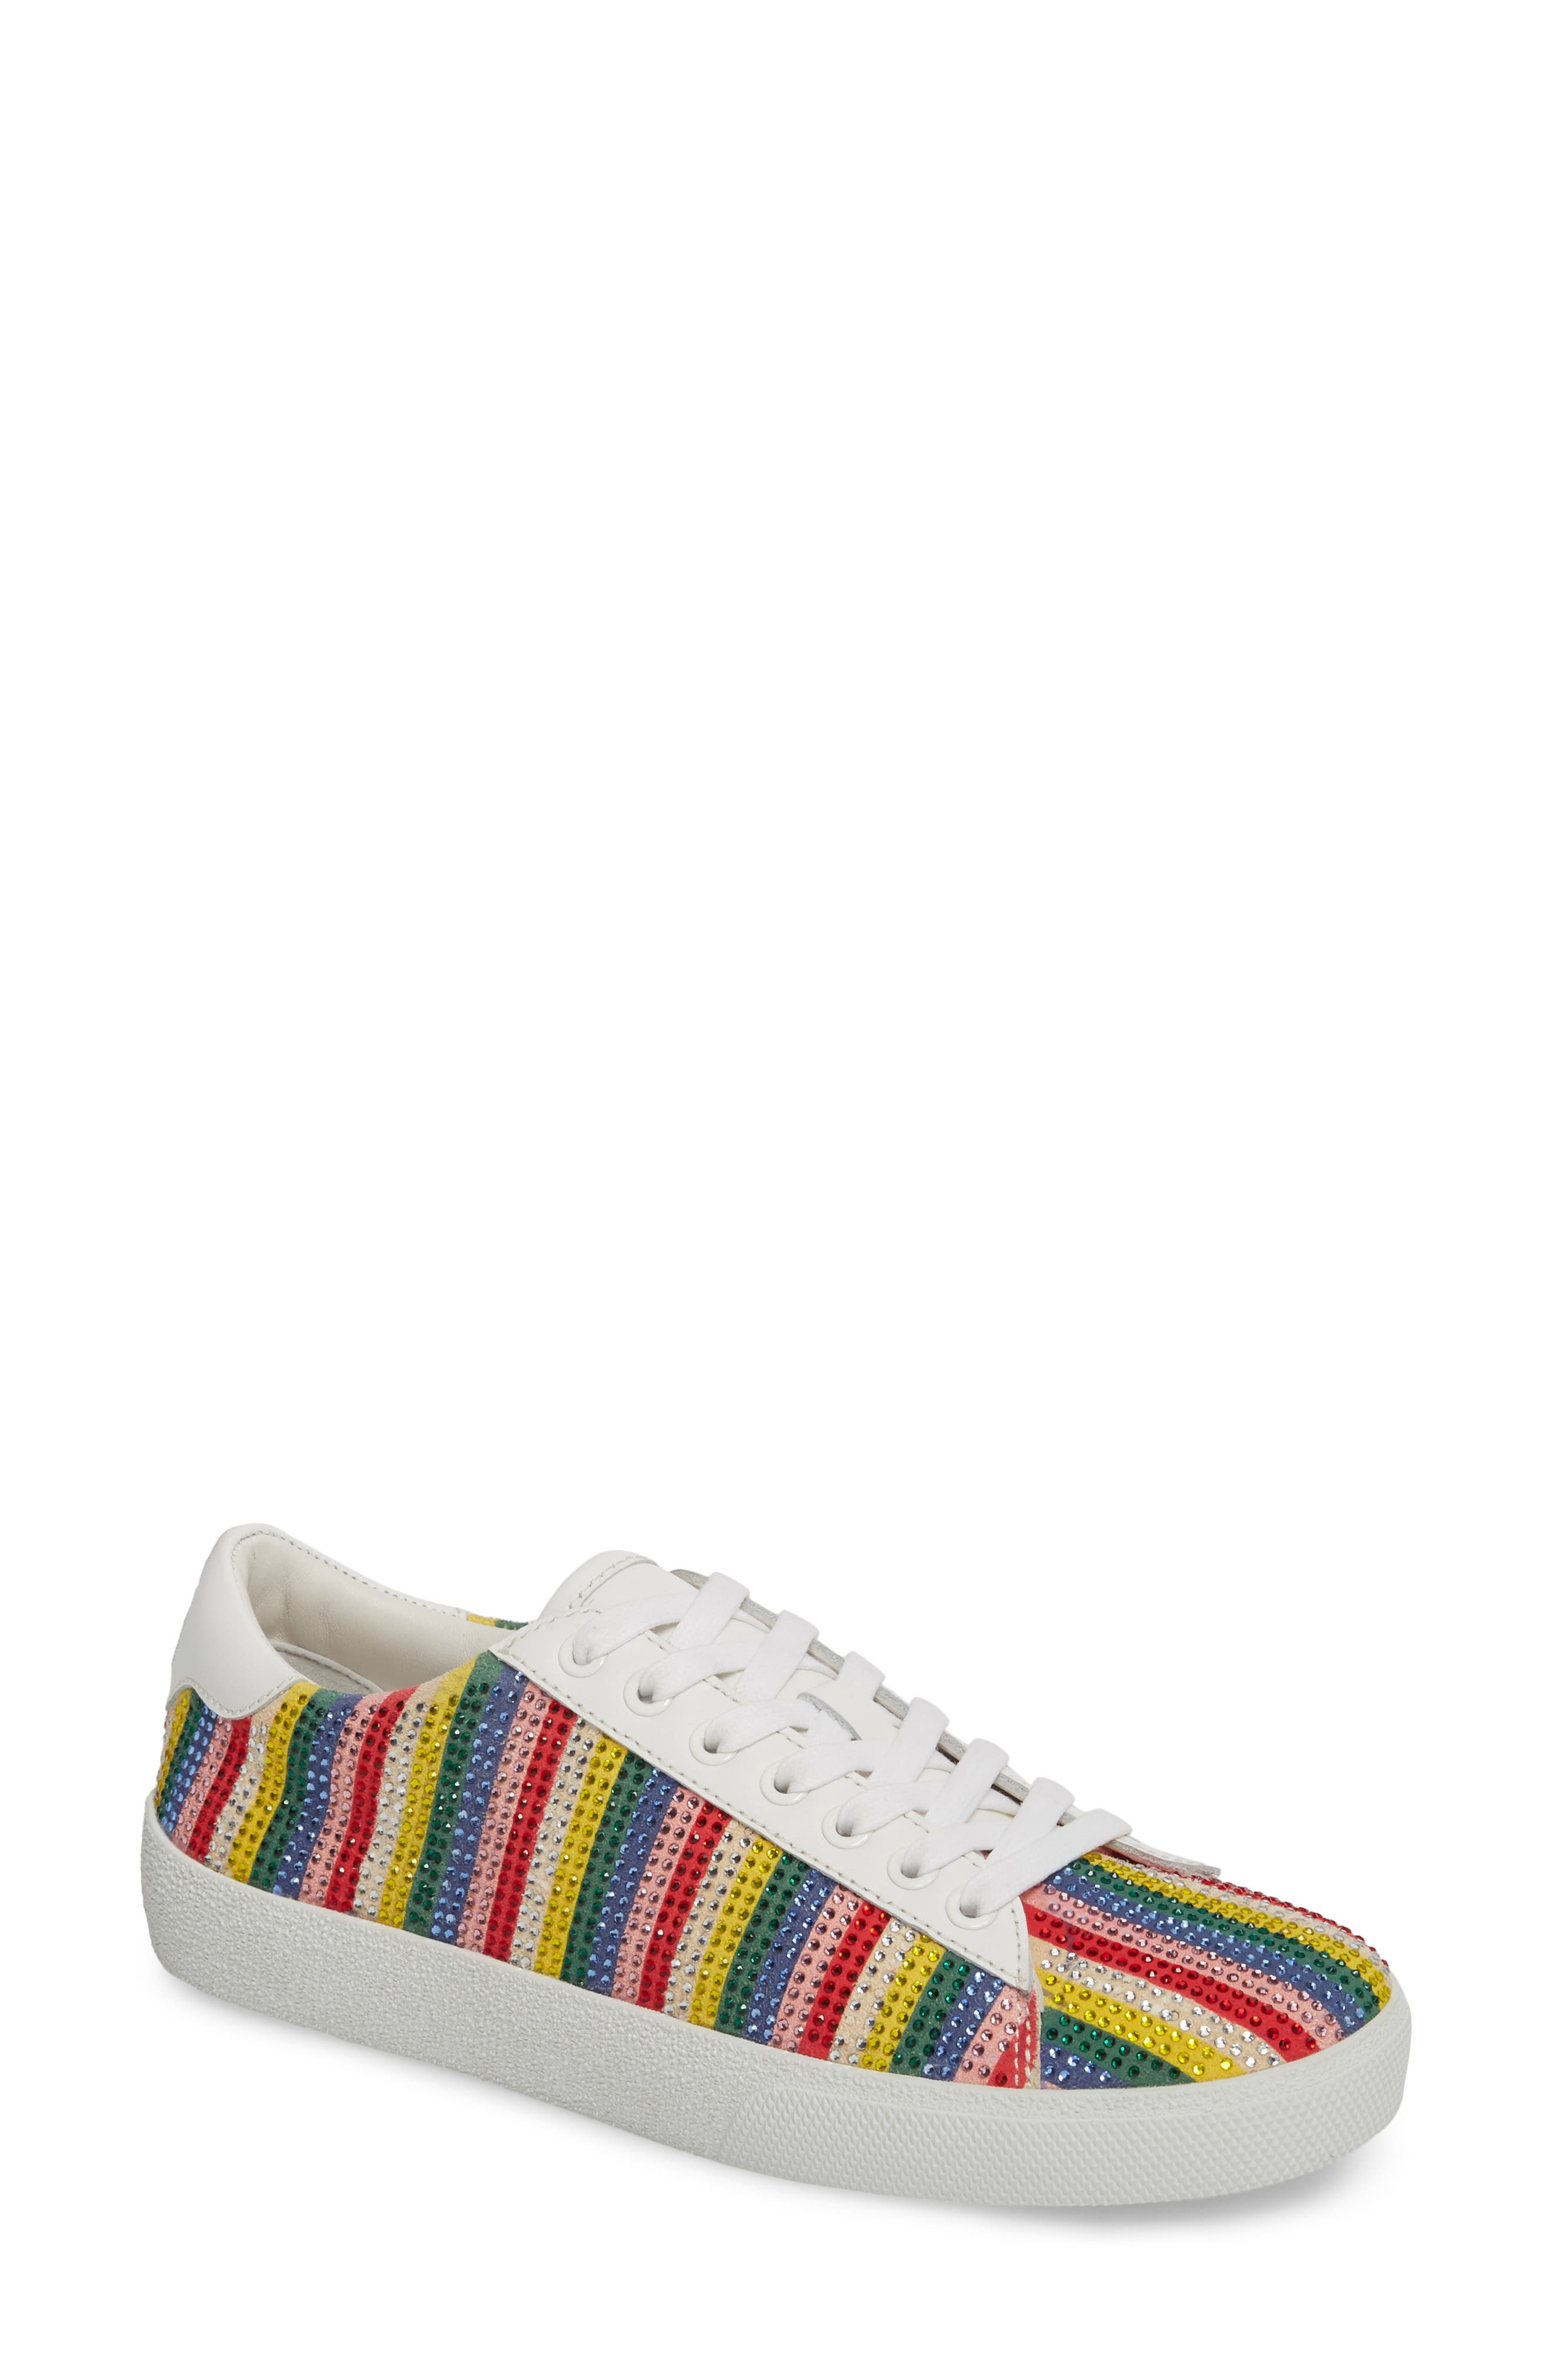 Cassidy Crystal Embellished Sneaker,                         Main,                         color,